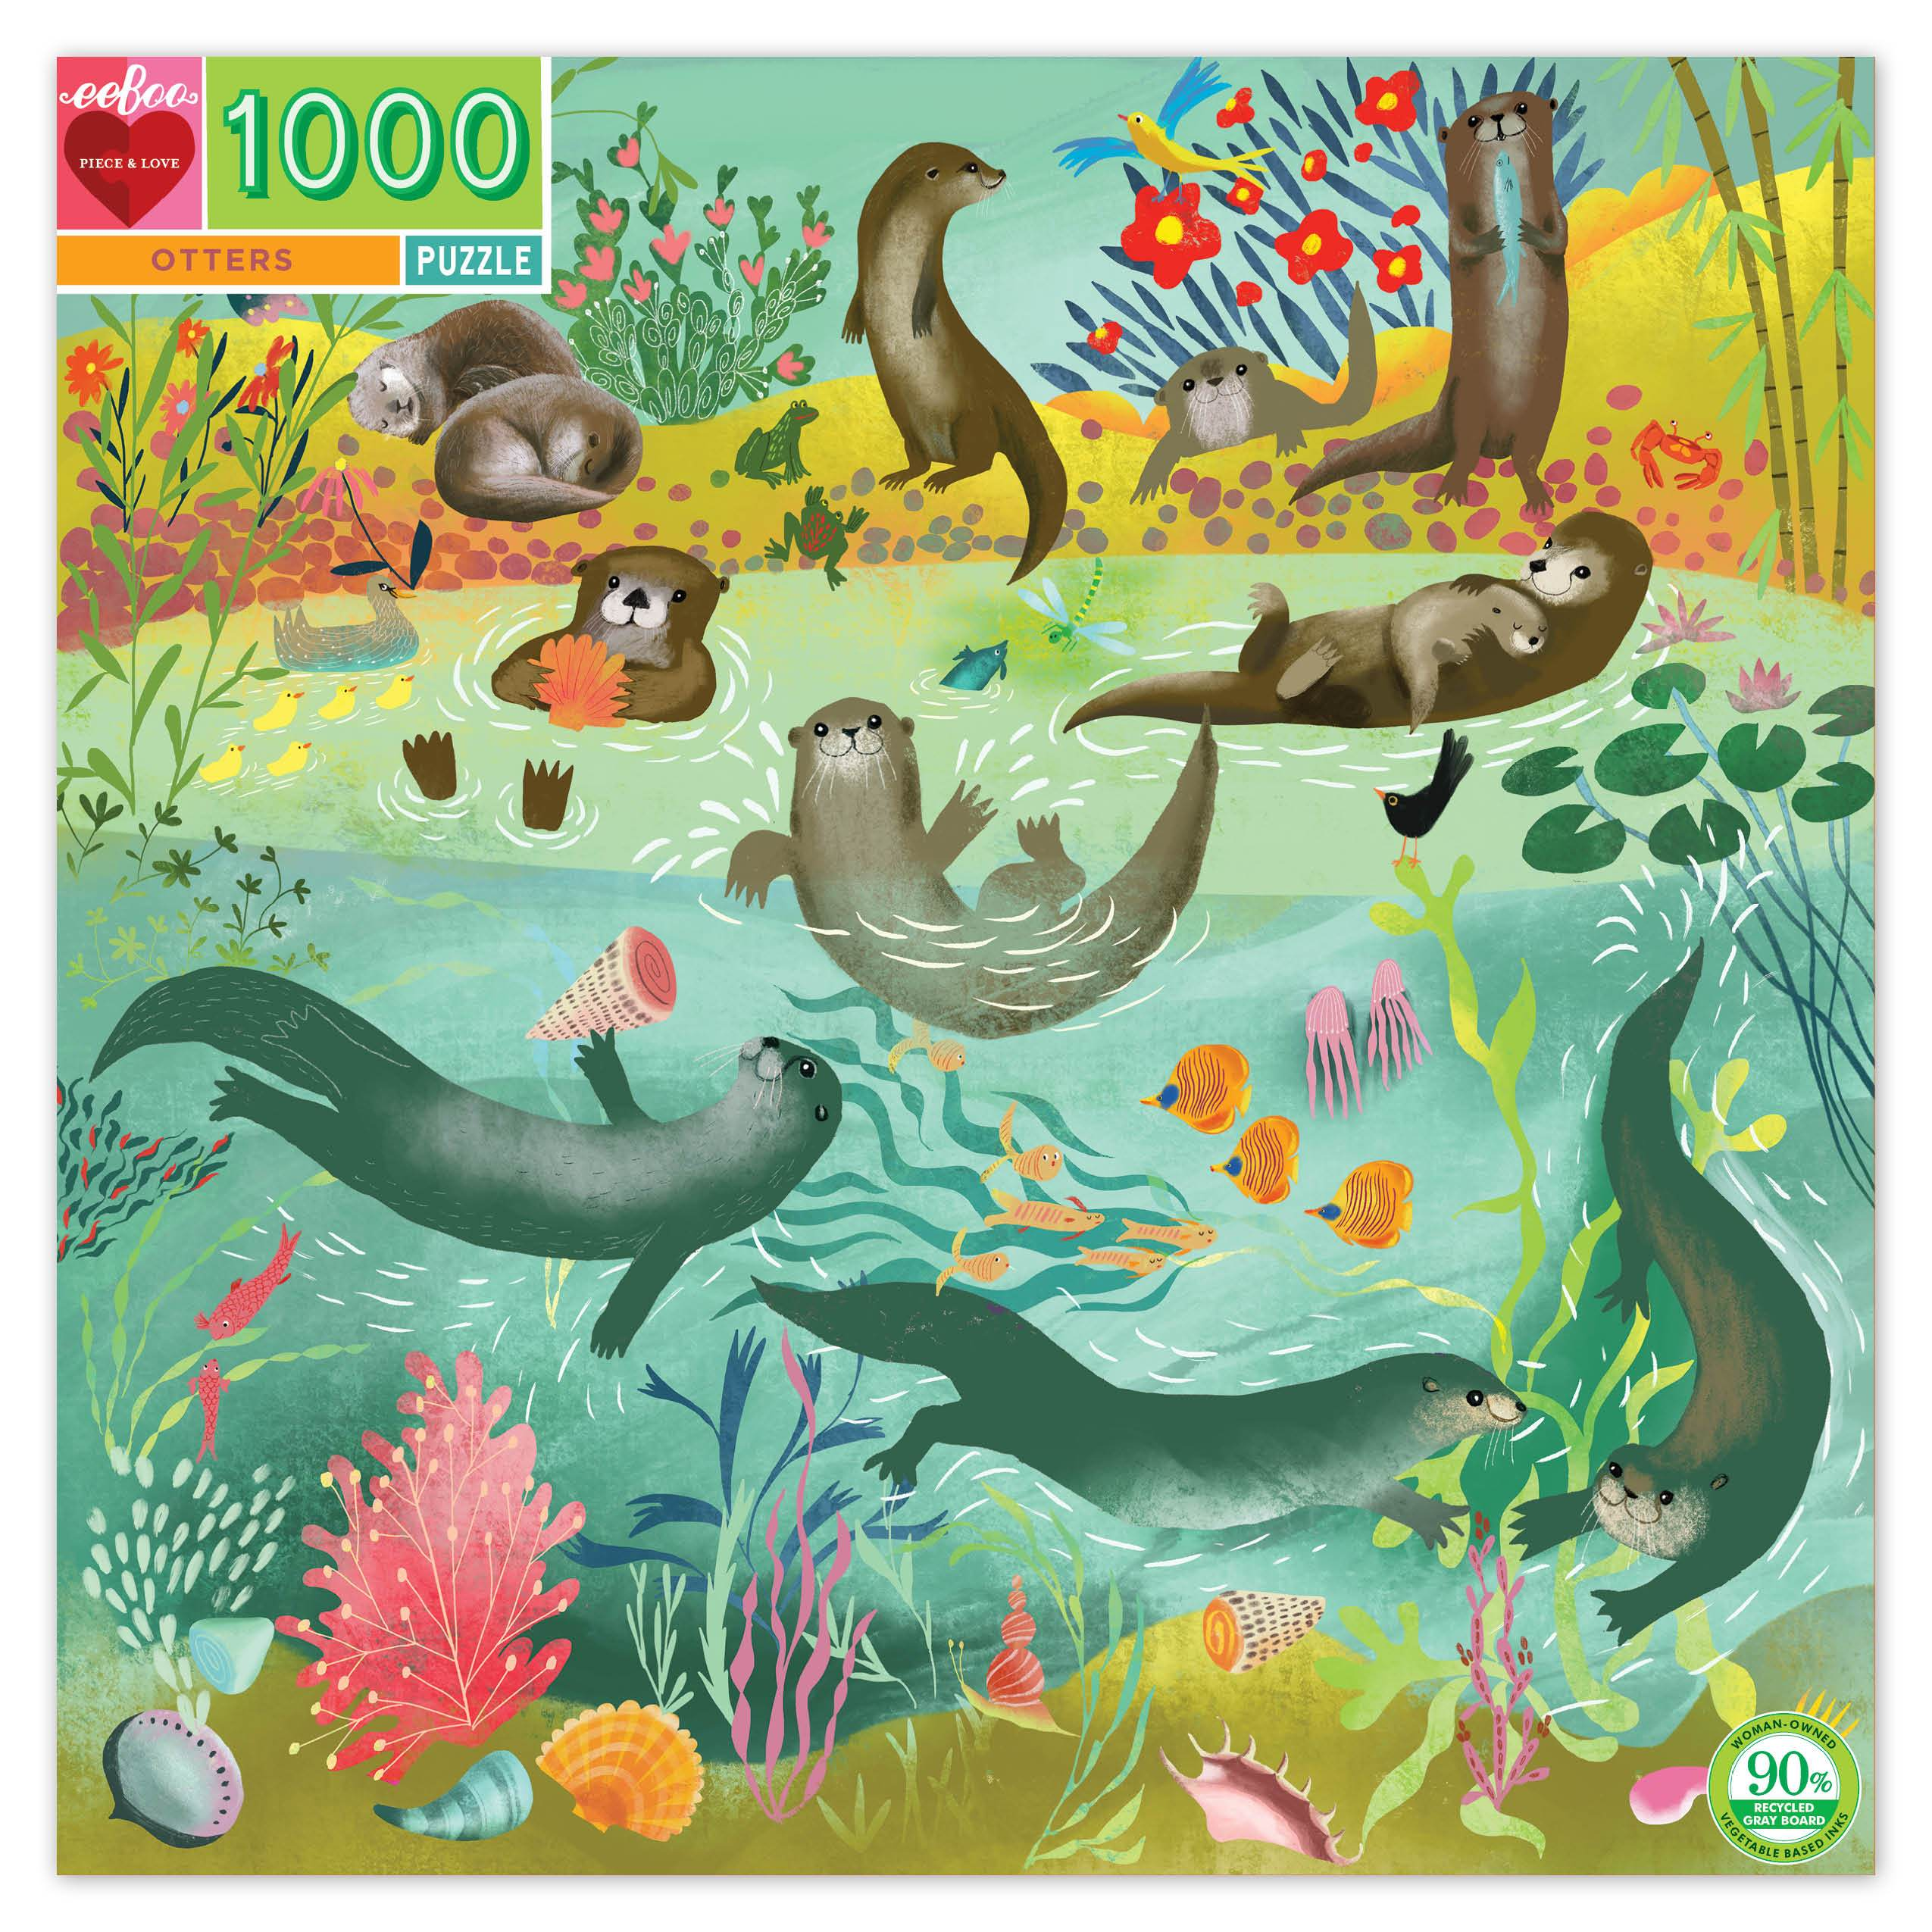 Otters 1000 piece Eeboo